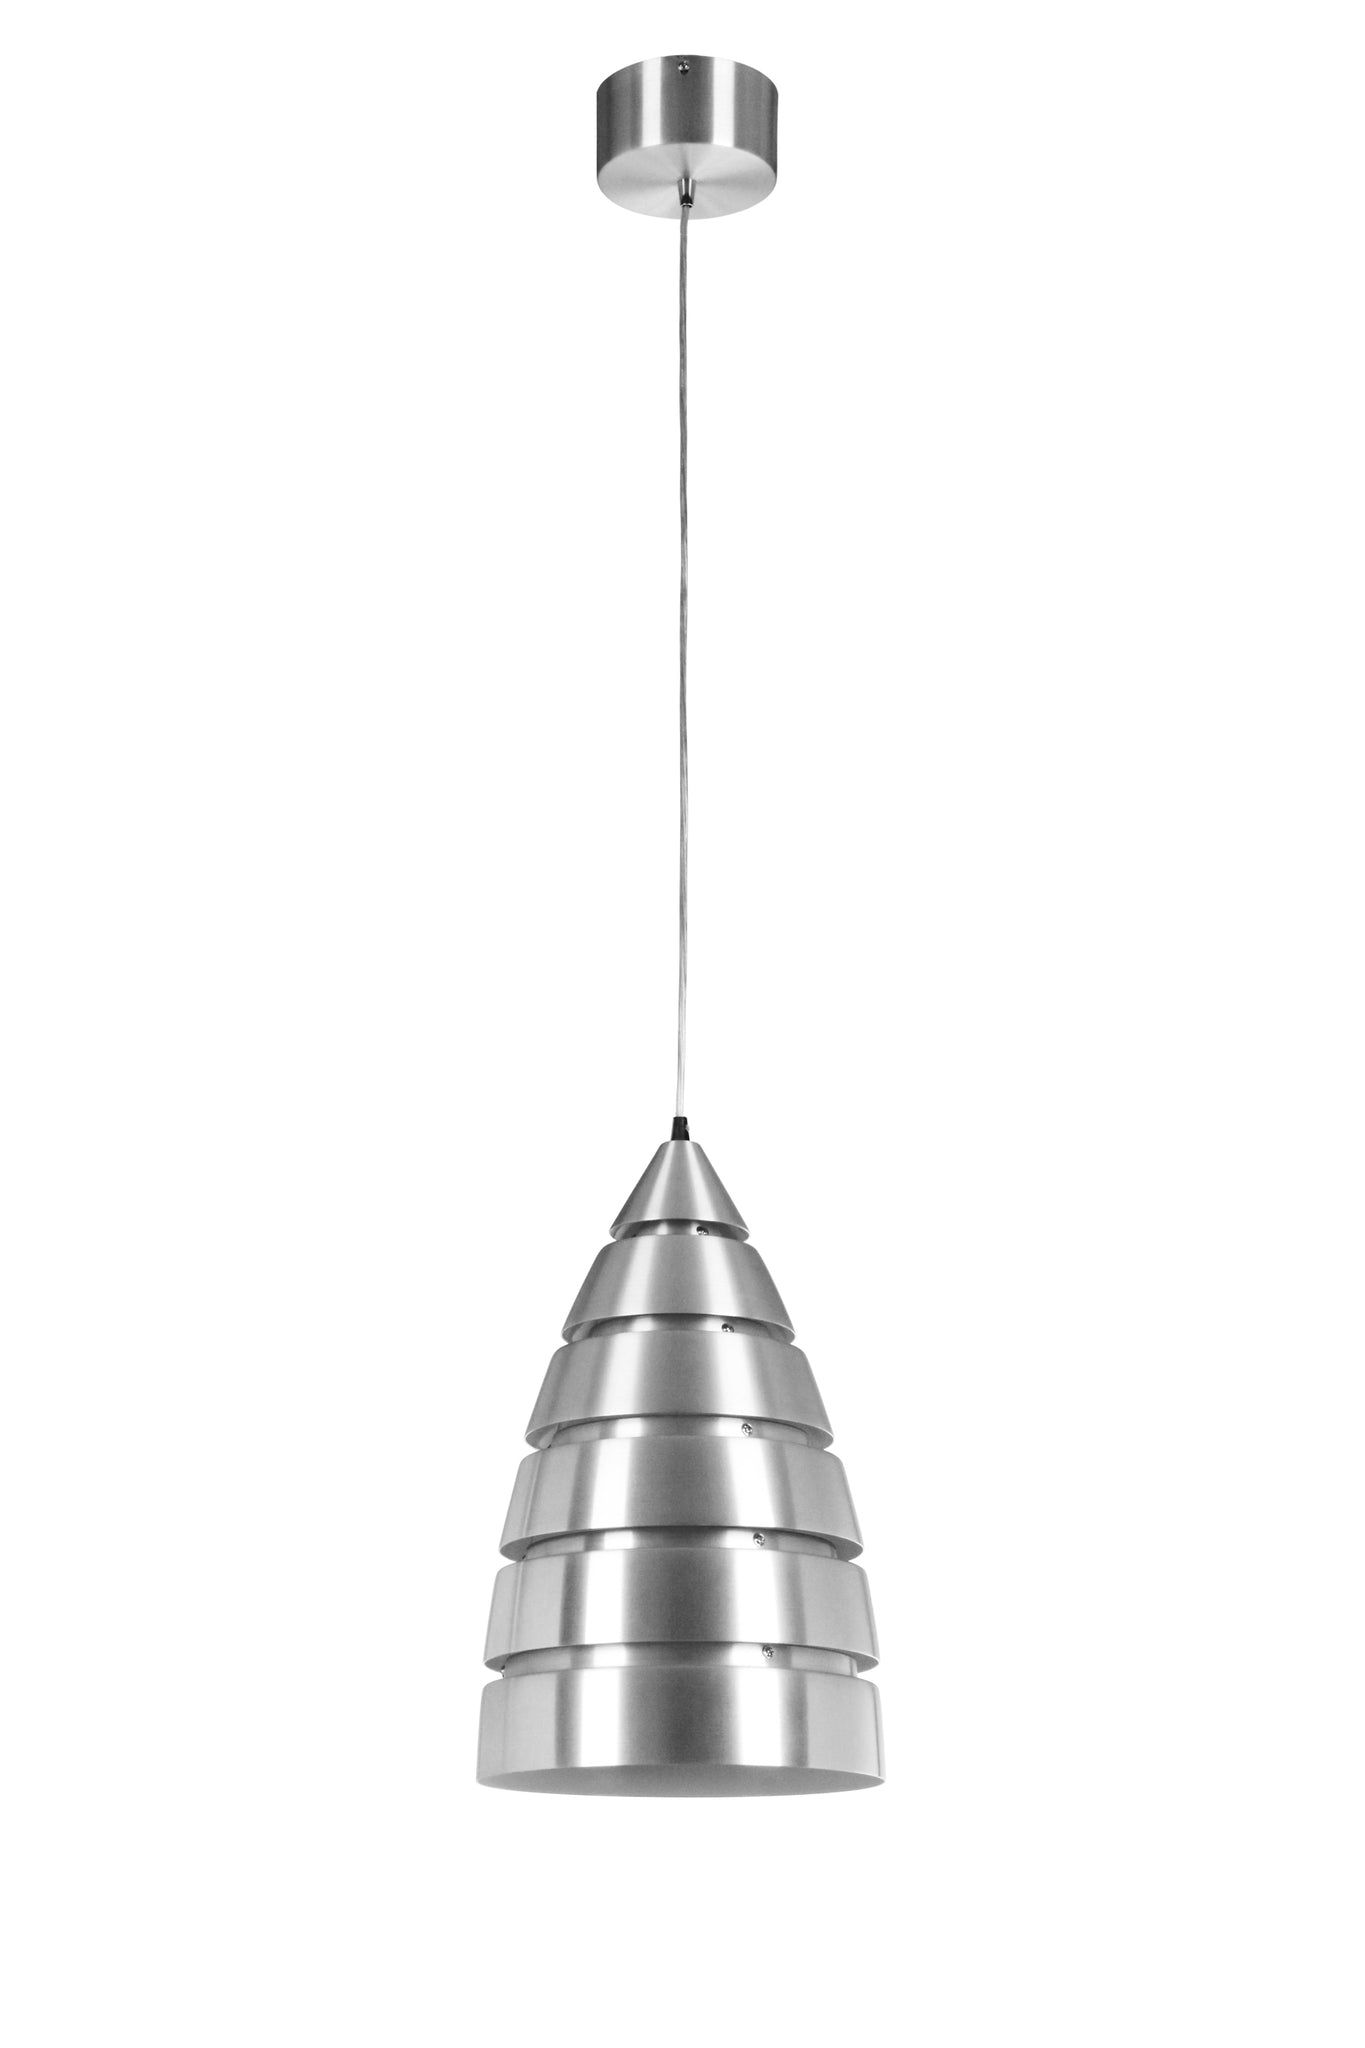 The Rodervre Pendant [LN1351BS]